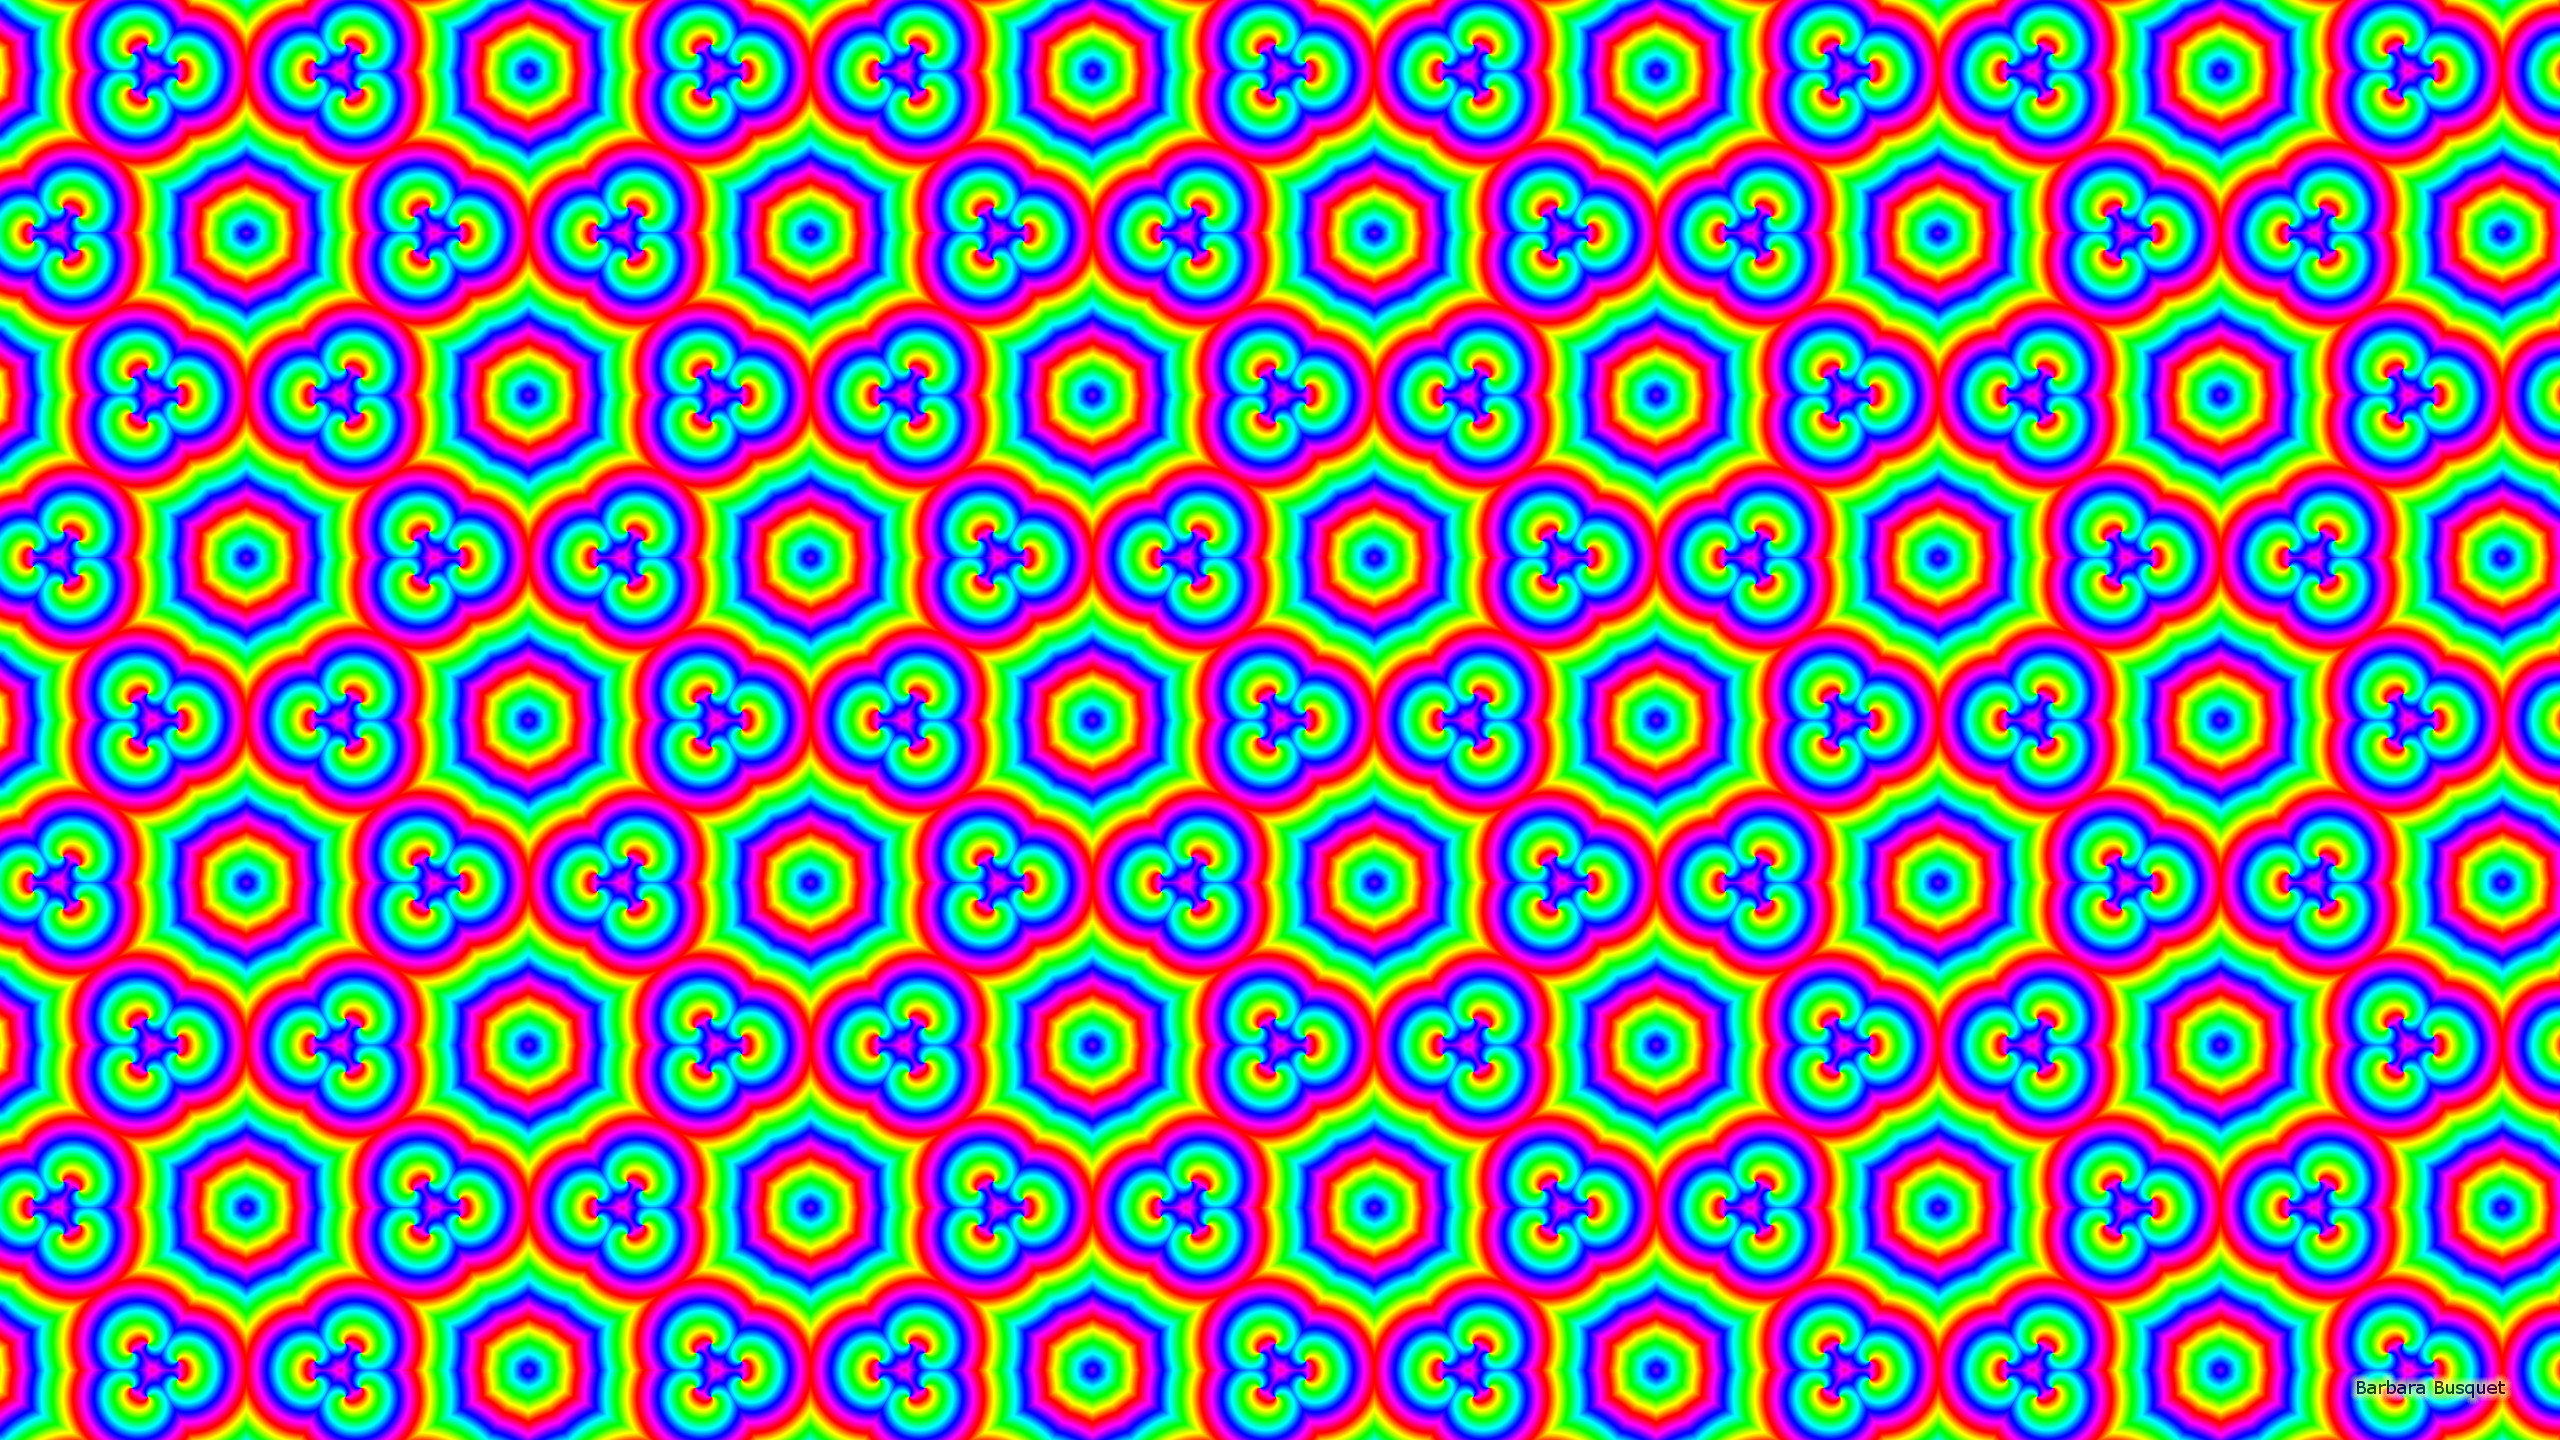 2560x1440 Shapes pattern wallpaper rainbow colors.